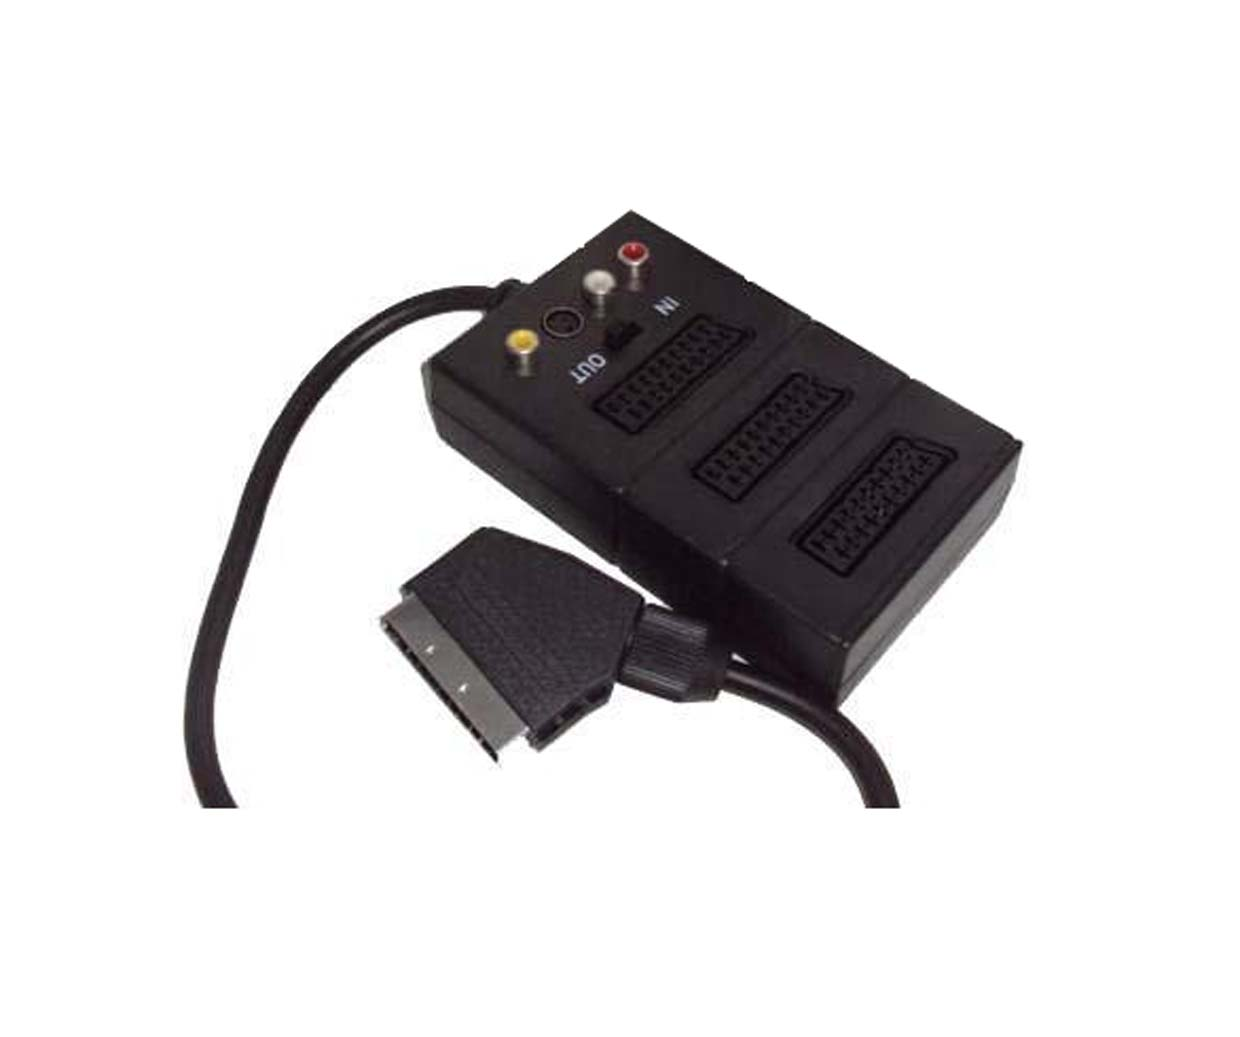 3 SCART + 3 RCA + S-VIDEO + SWITCH